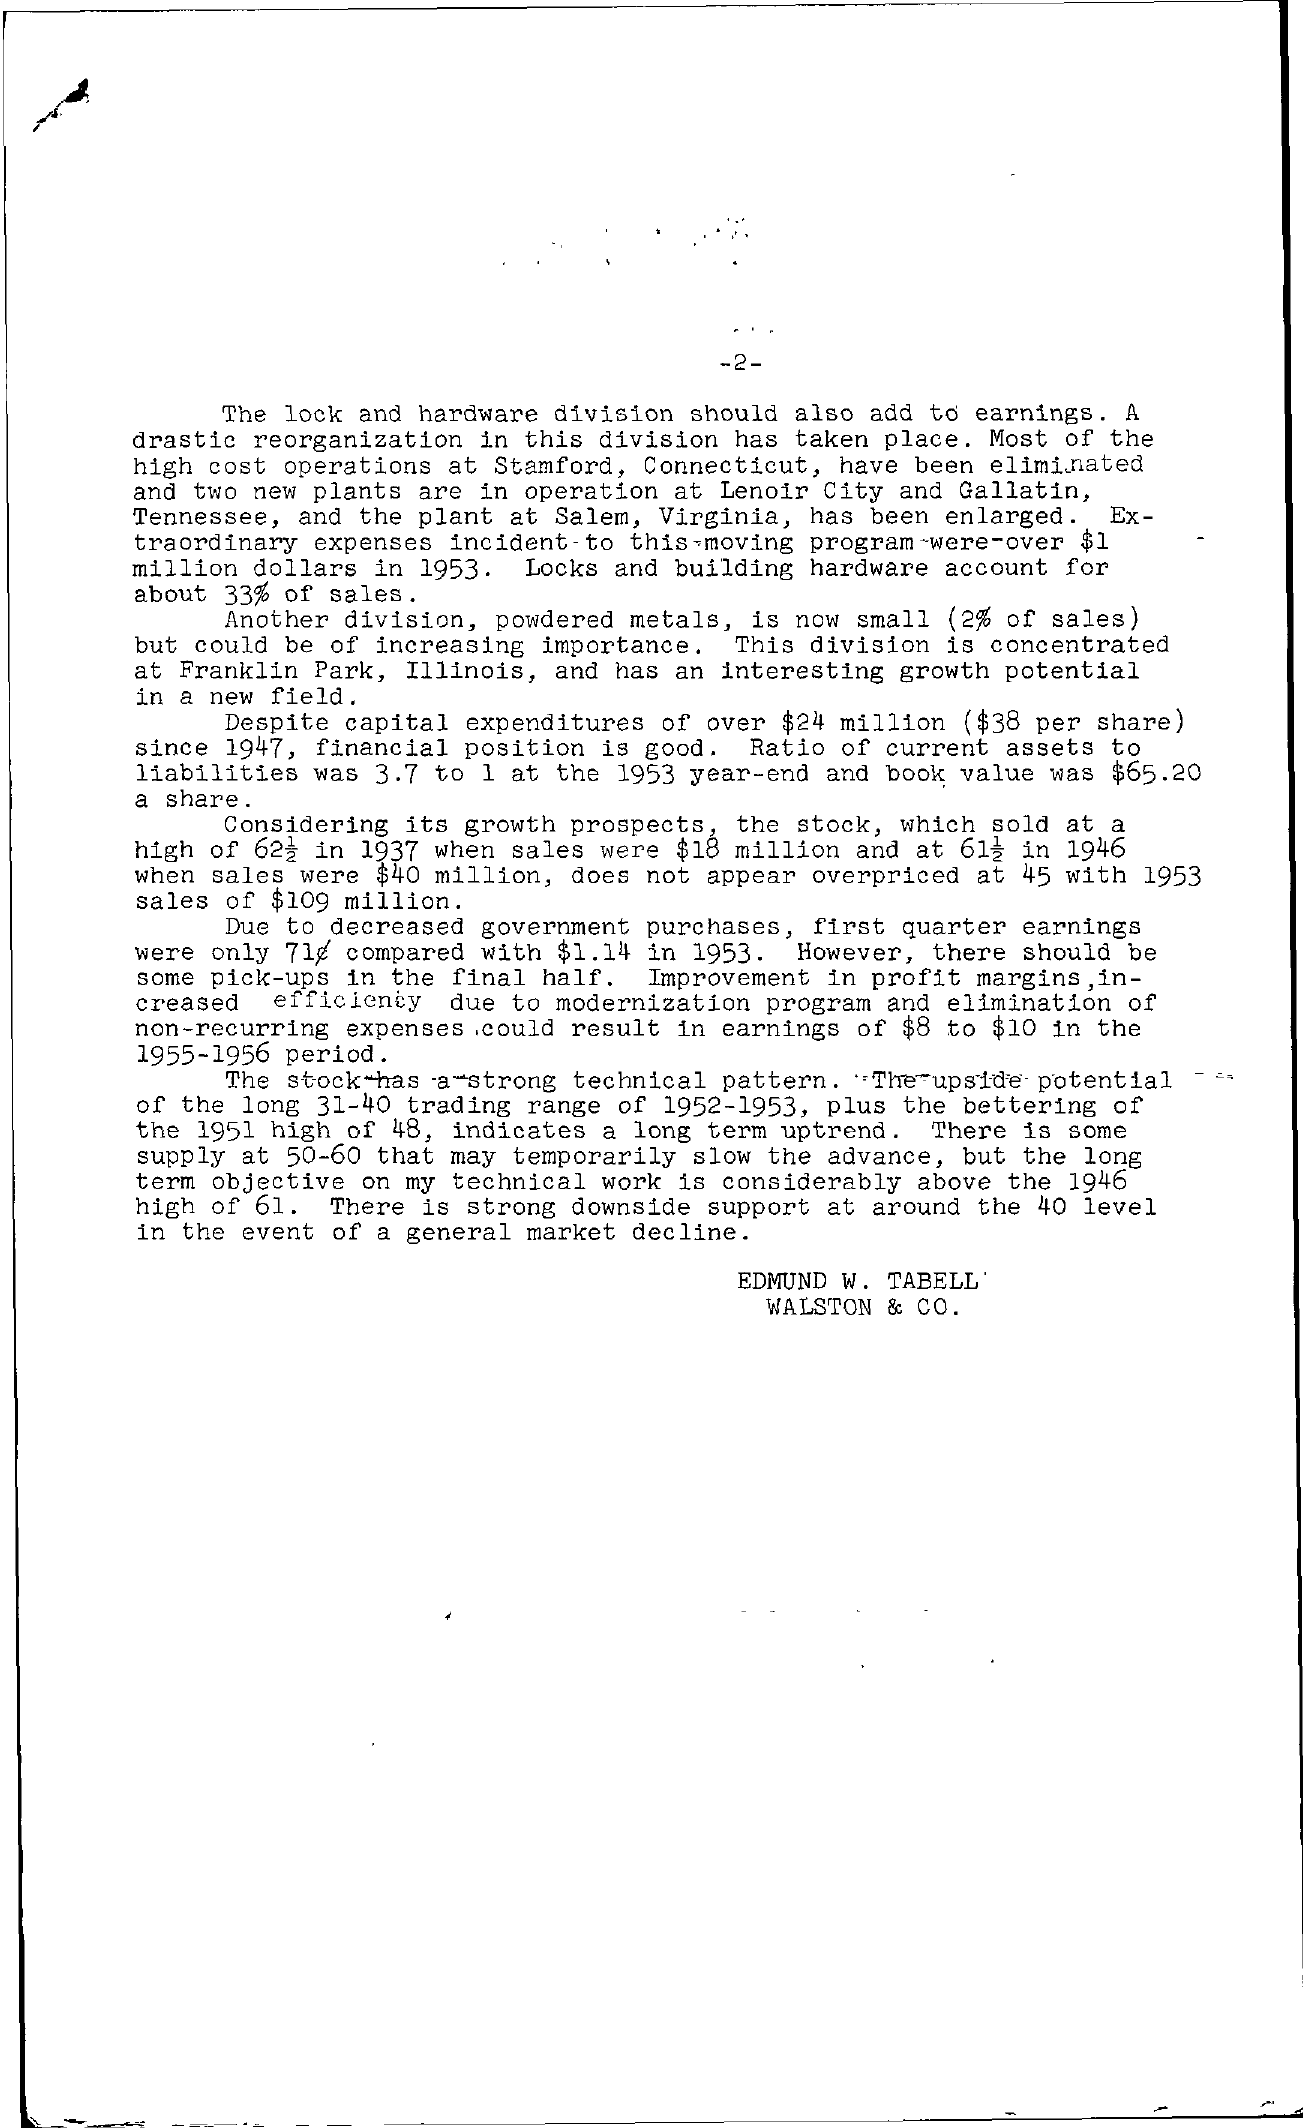 Tabell's Market Letter - July 02, 1954 page 2